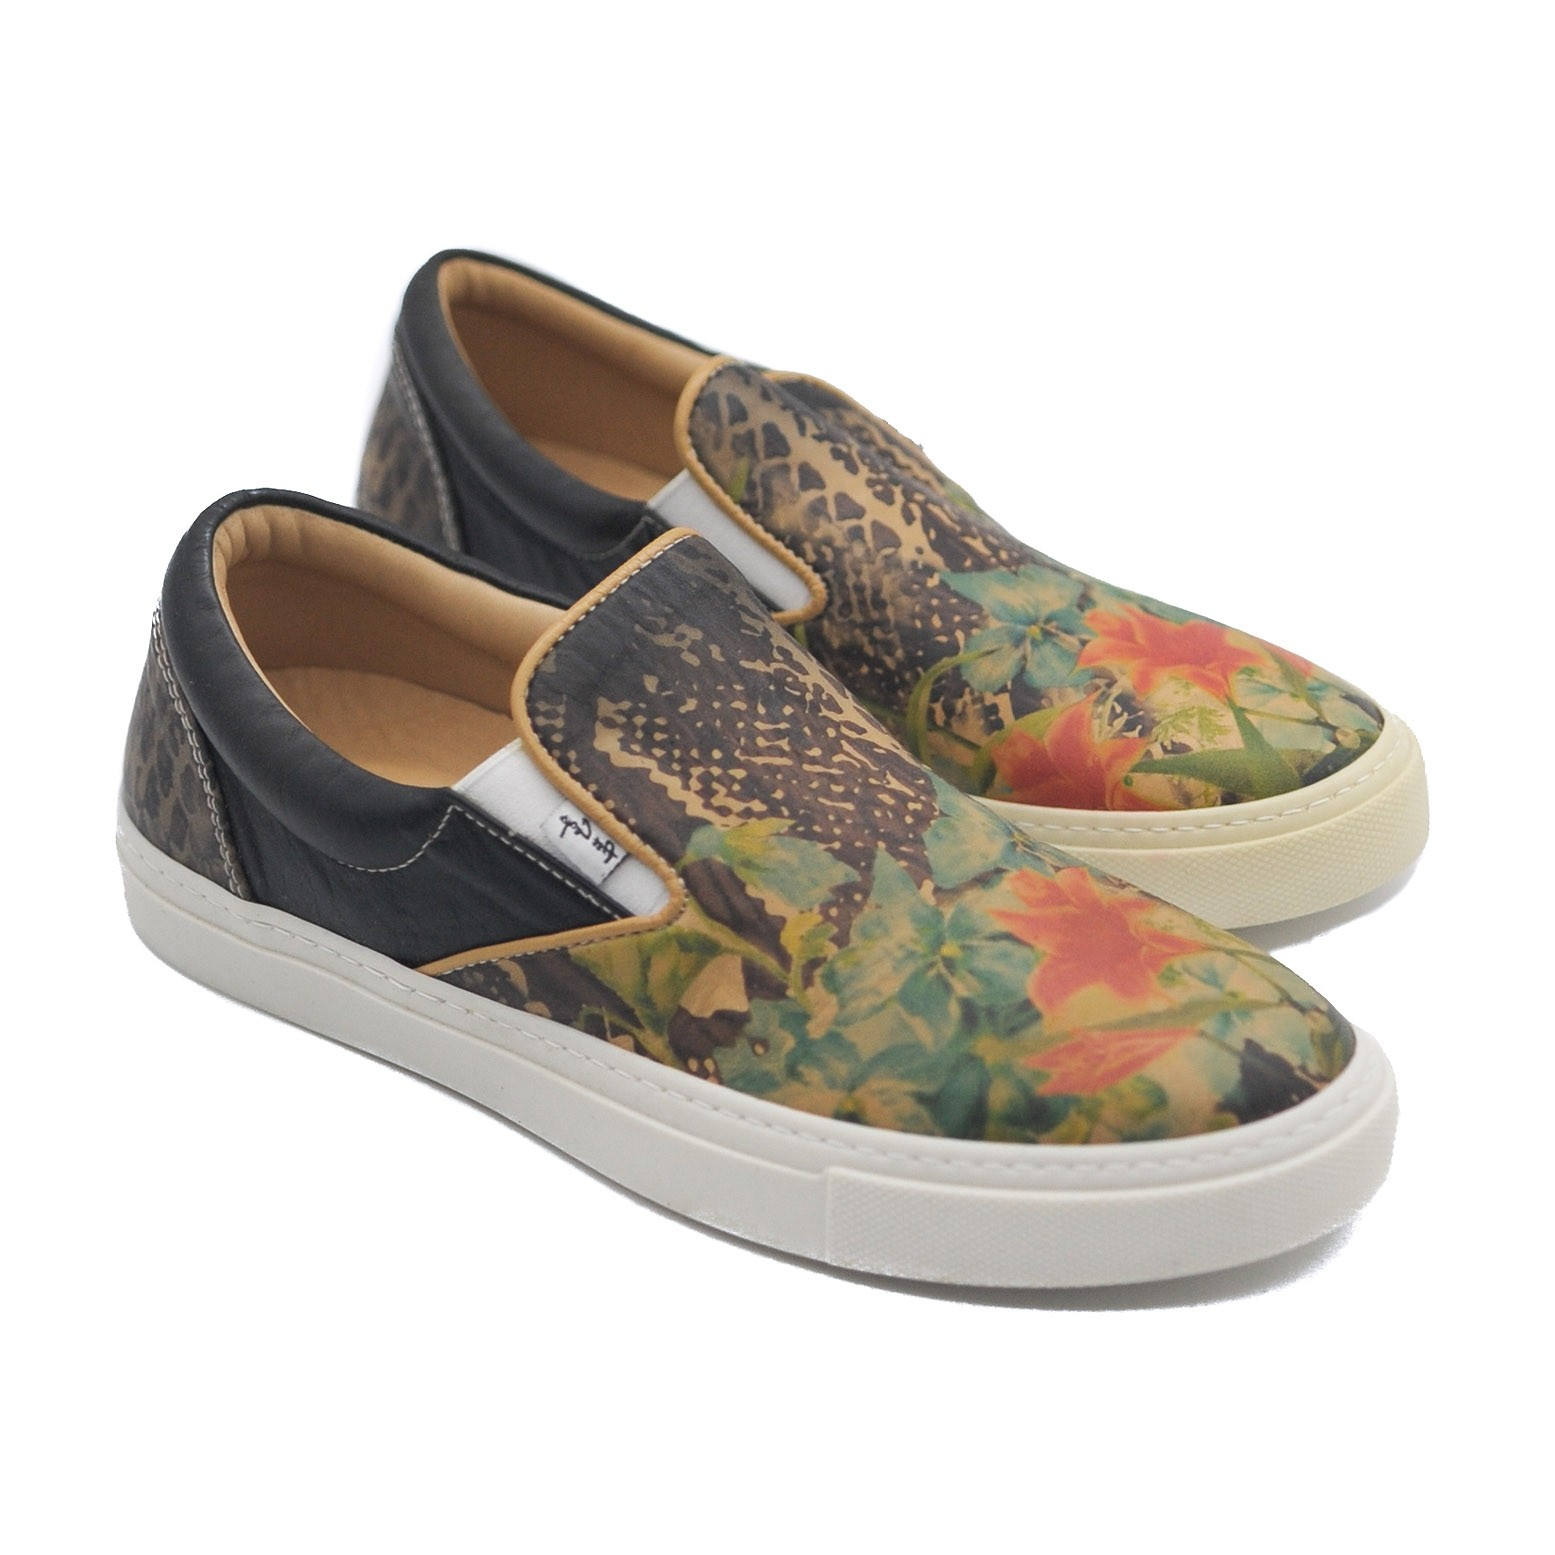 Art Goya Ladies' Slip on Leather Pumps with a Floral Design Low Skater Shoes